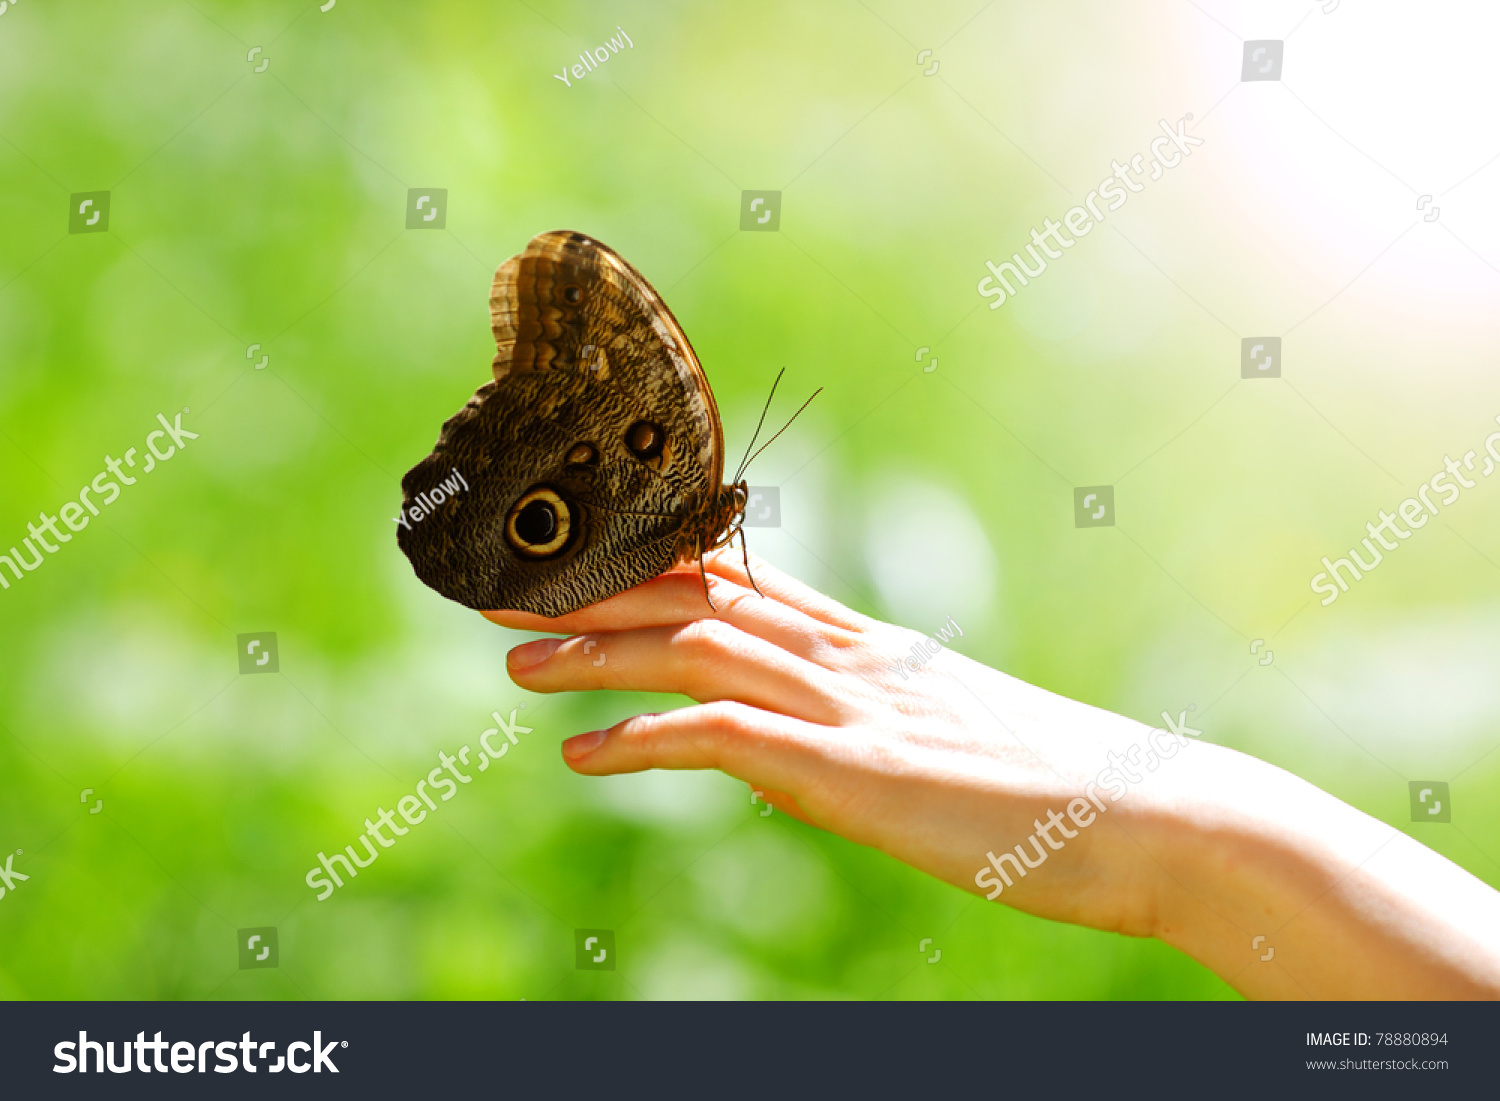 Uncategorized Butterfly Hand butterfly on woman hand close stock photo 78880894 shutterstock up